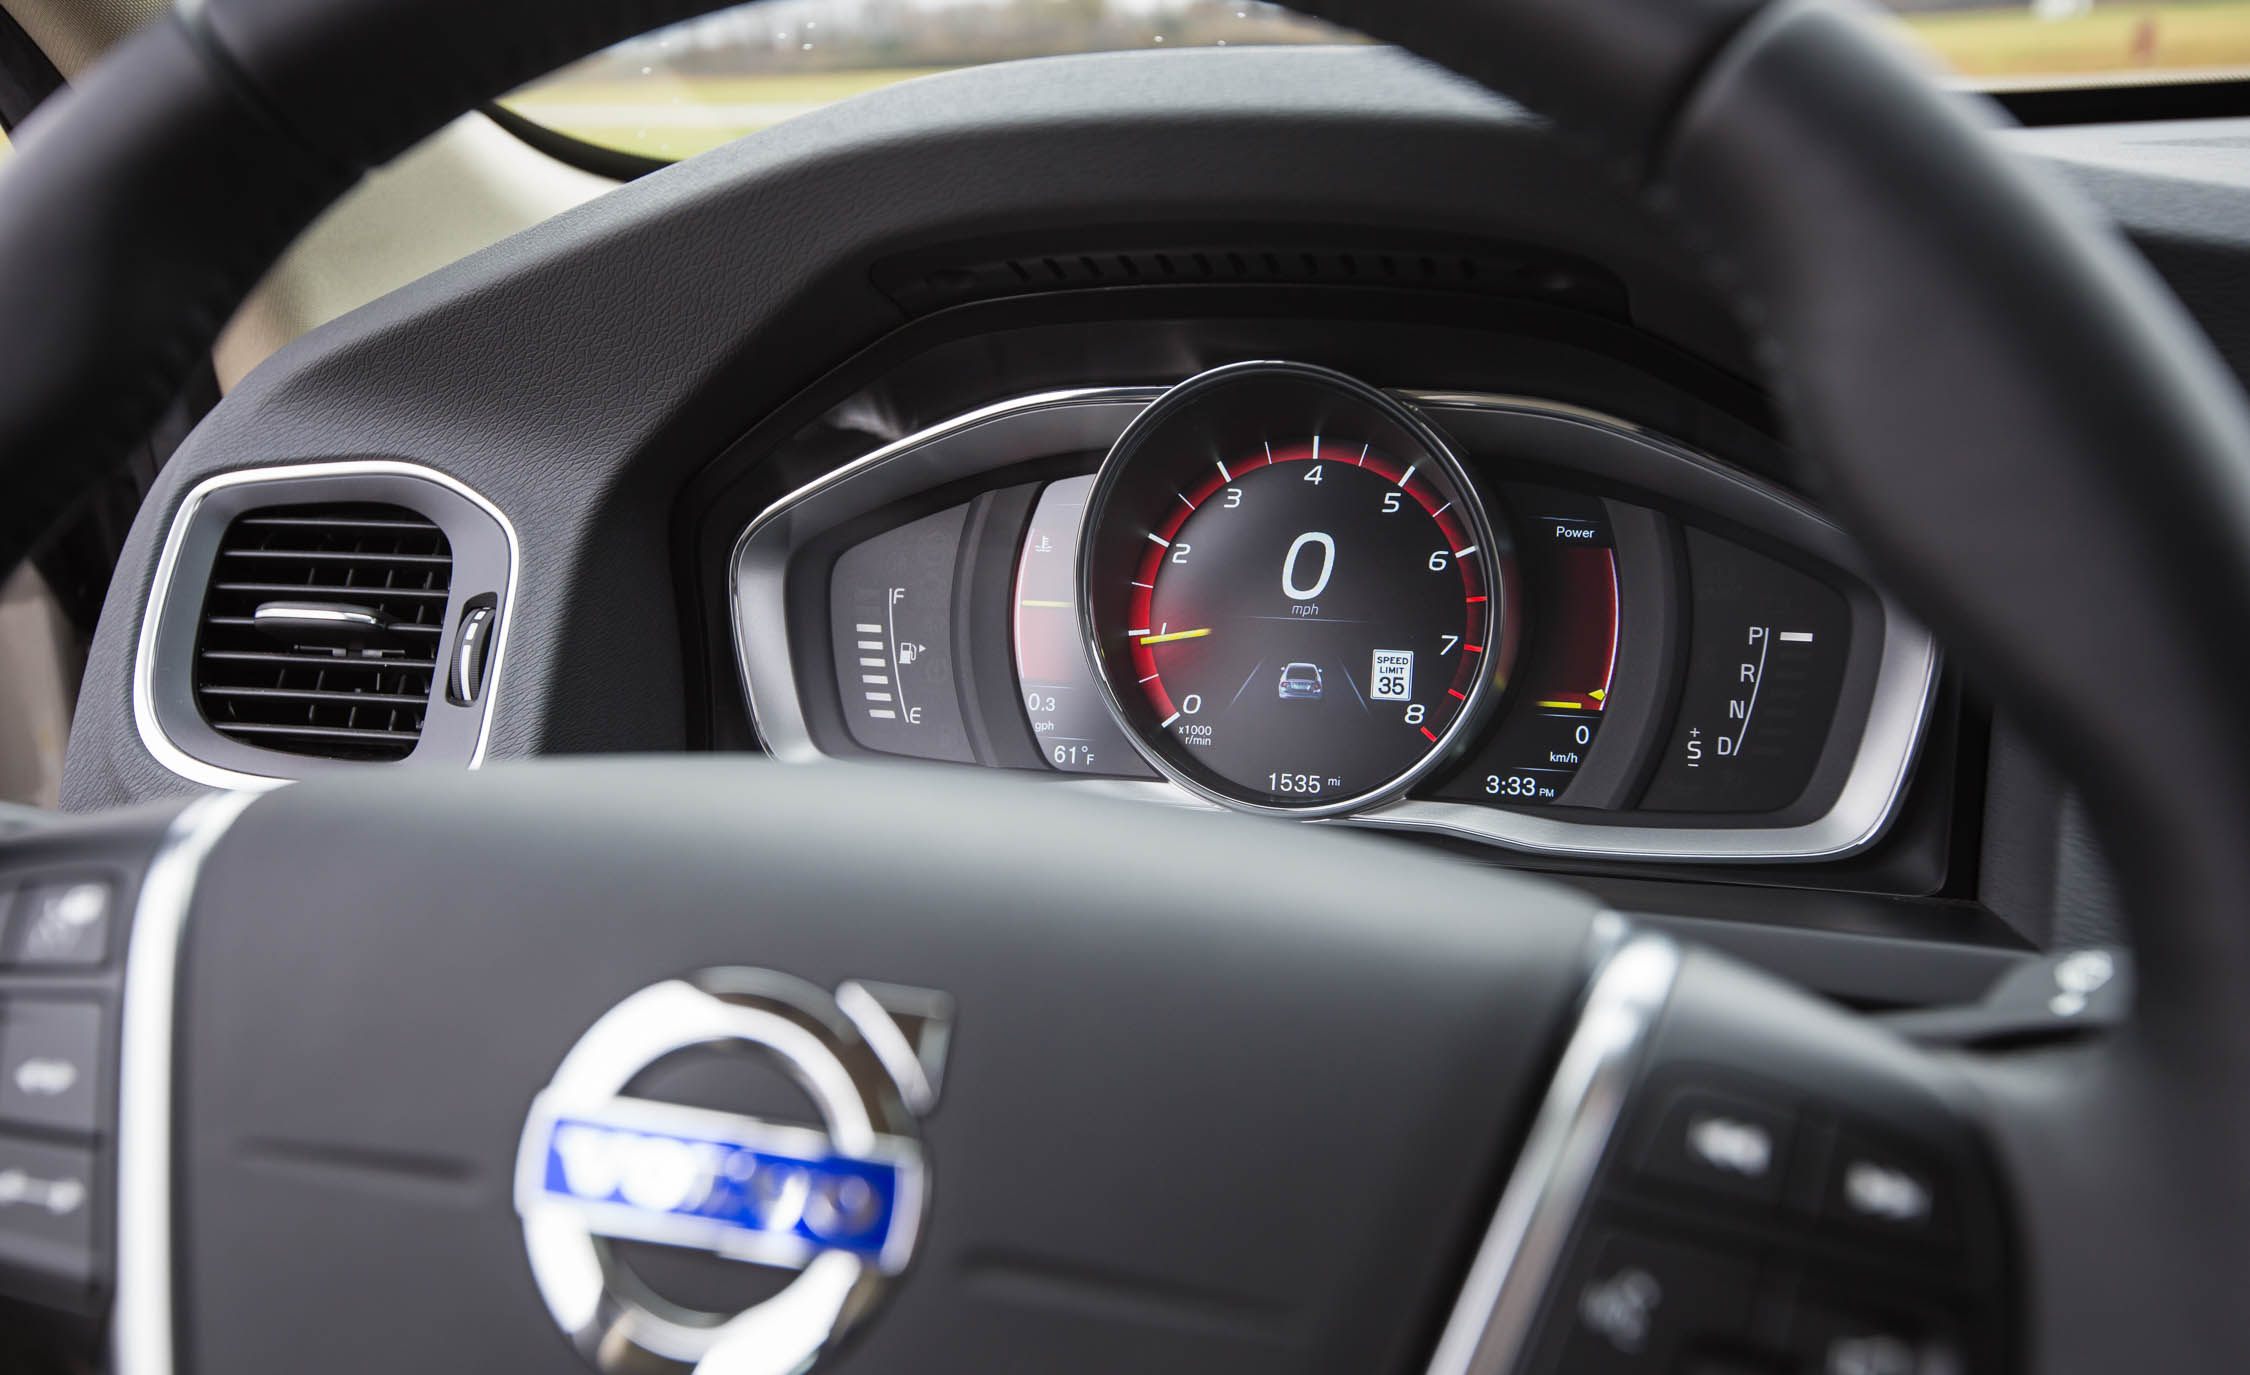 2016 Volvo S60 T5 Inscription Interior Speedometer